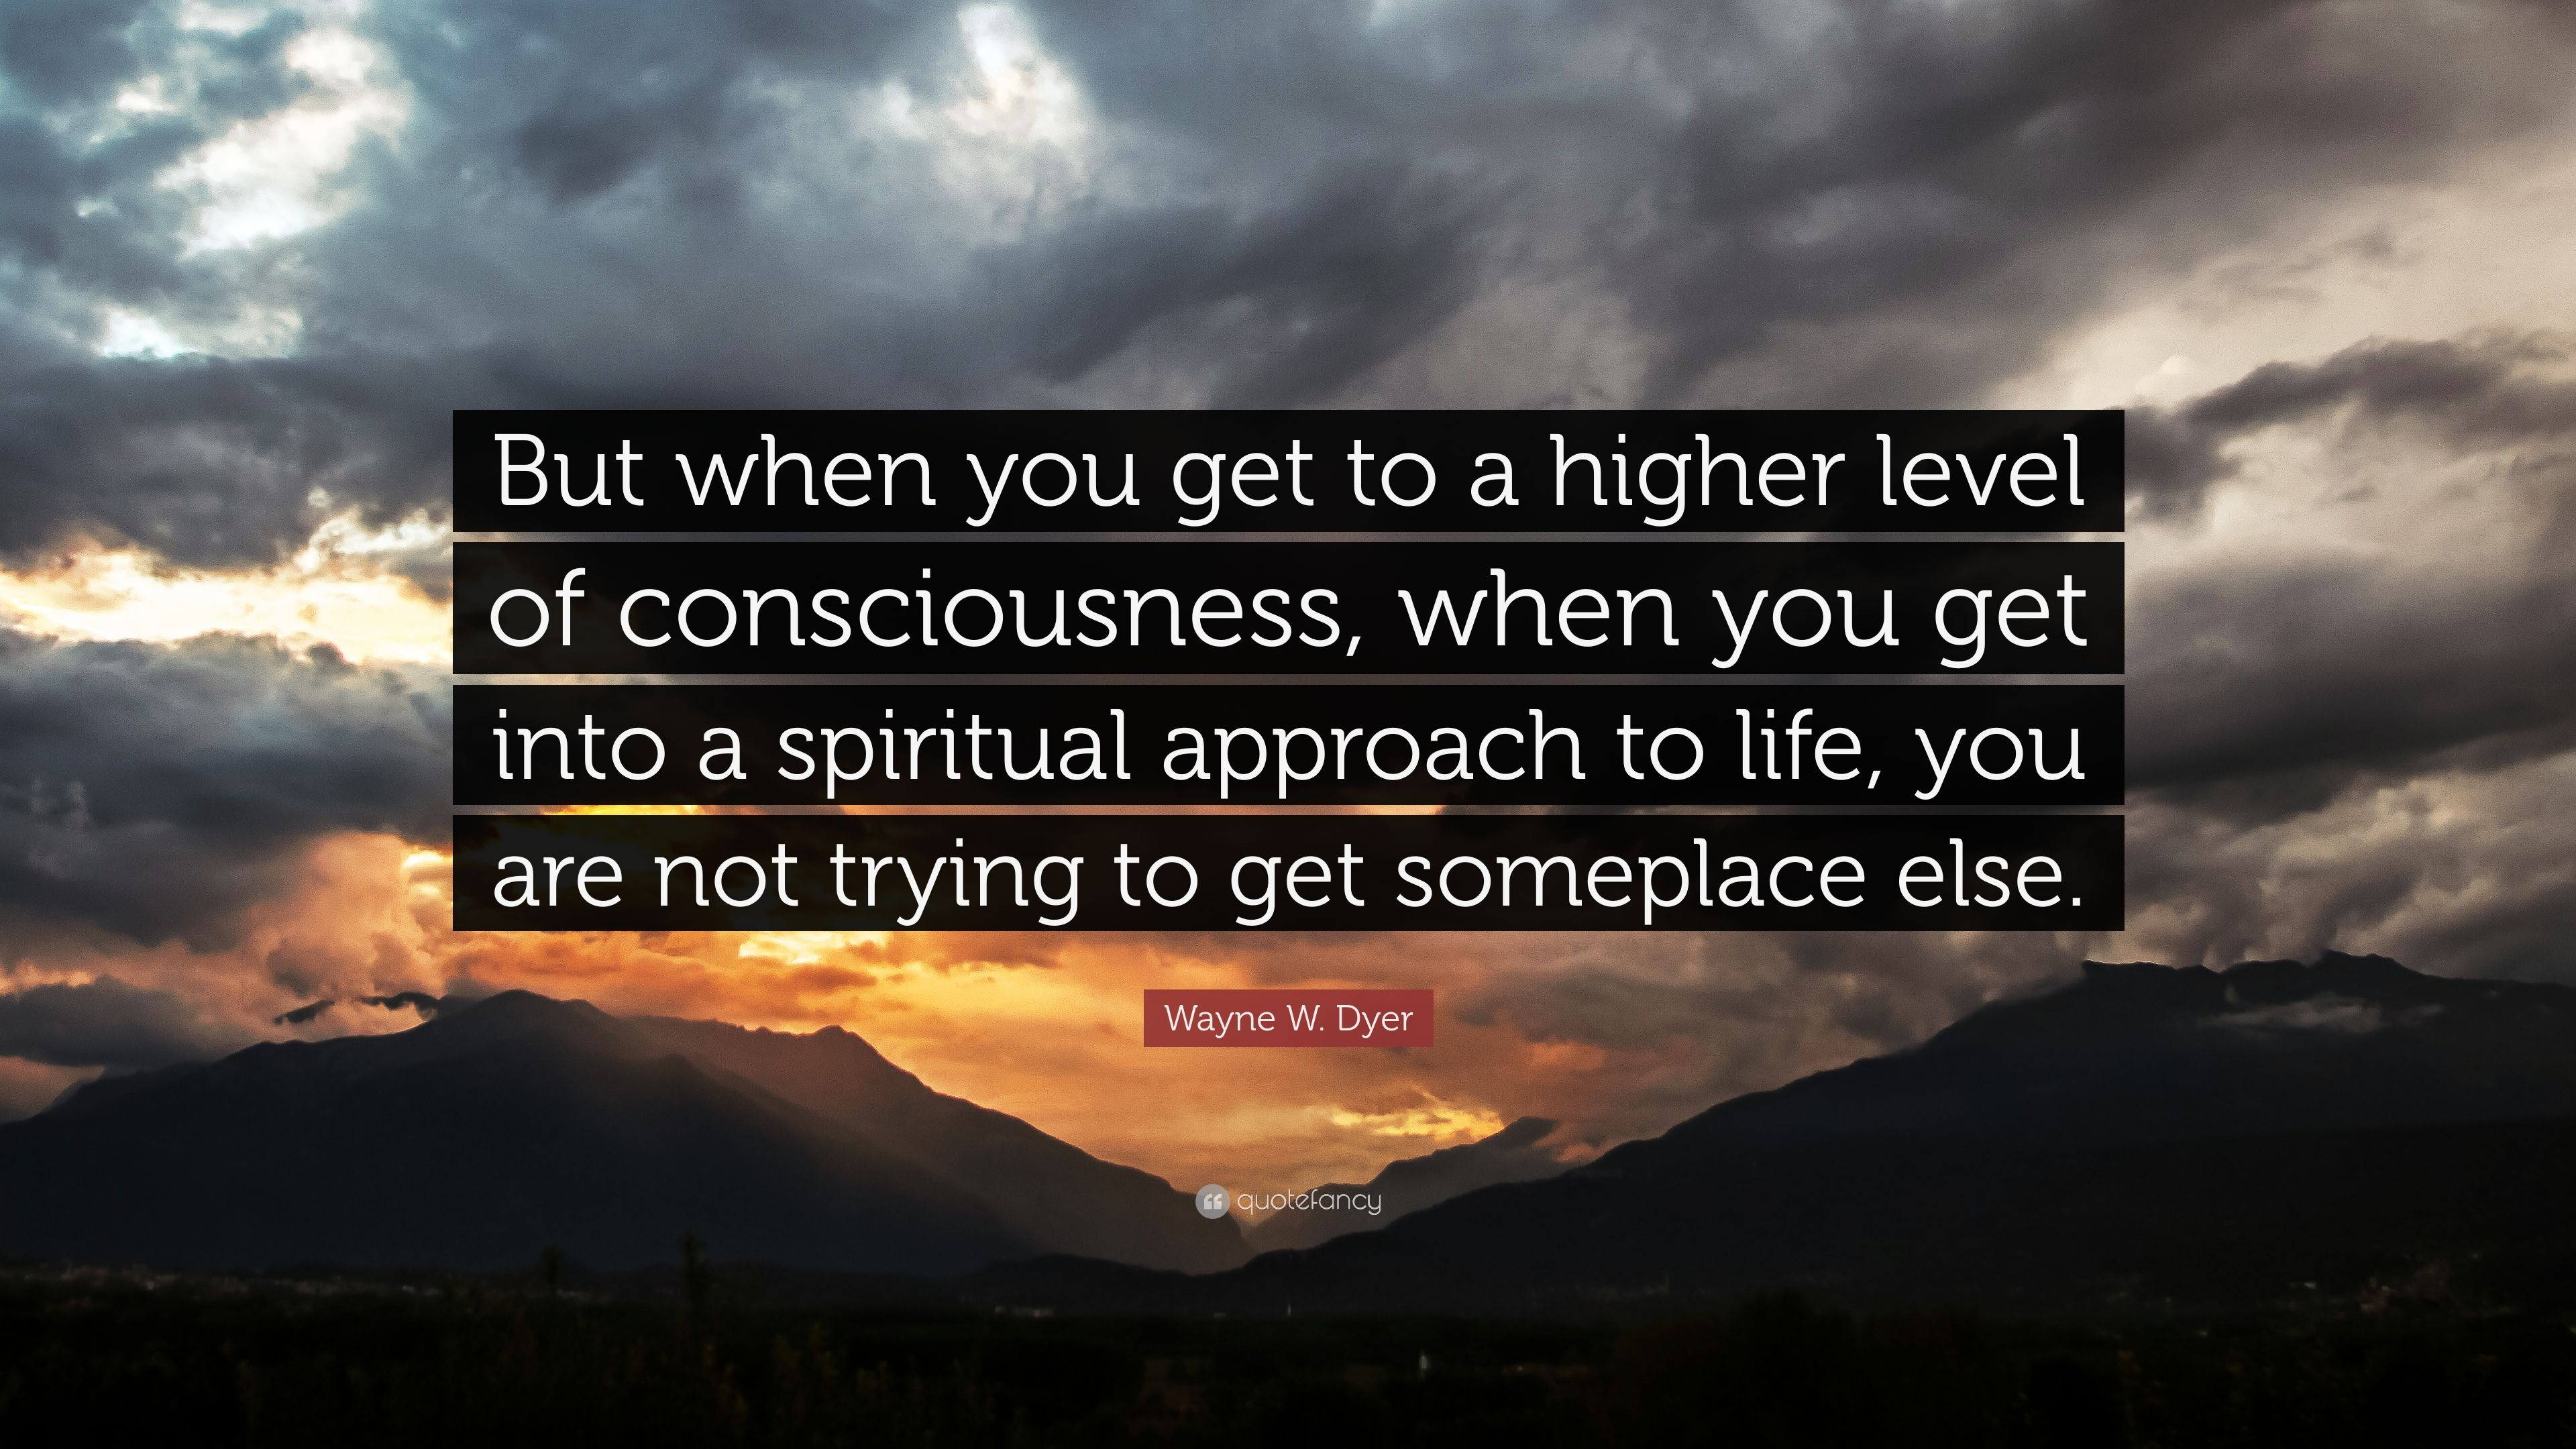 Wayne W Dyer Quote But When You Get To A Higher Level Of